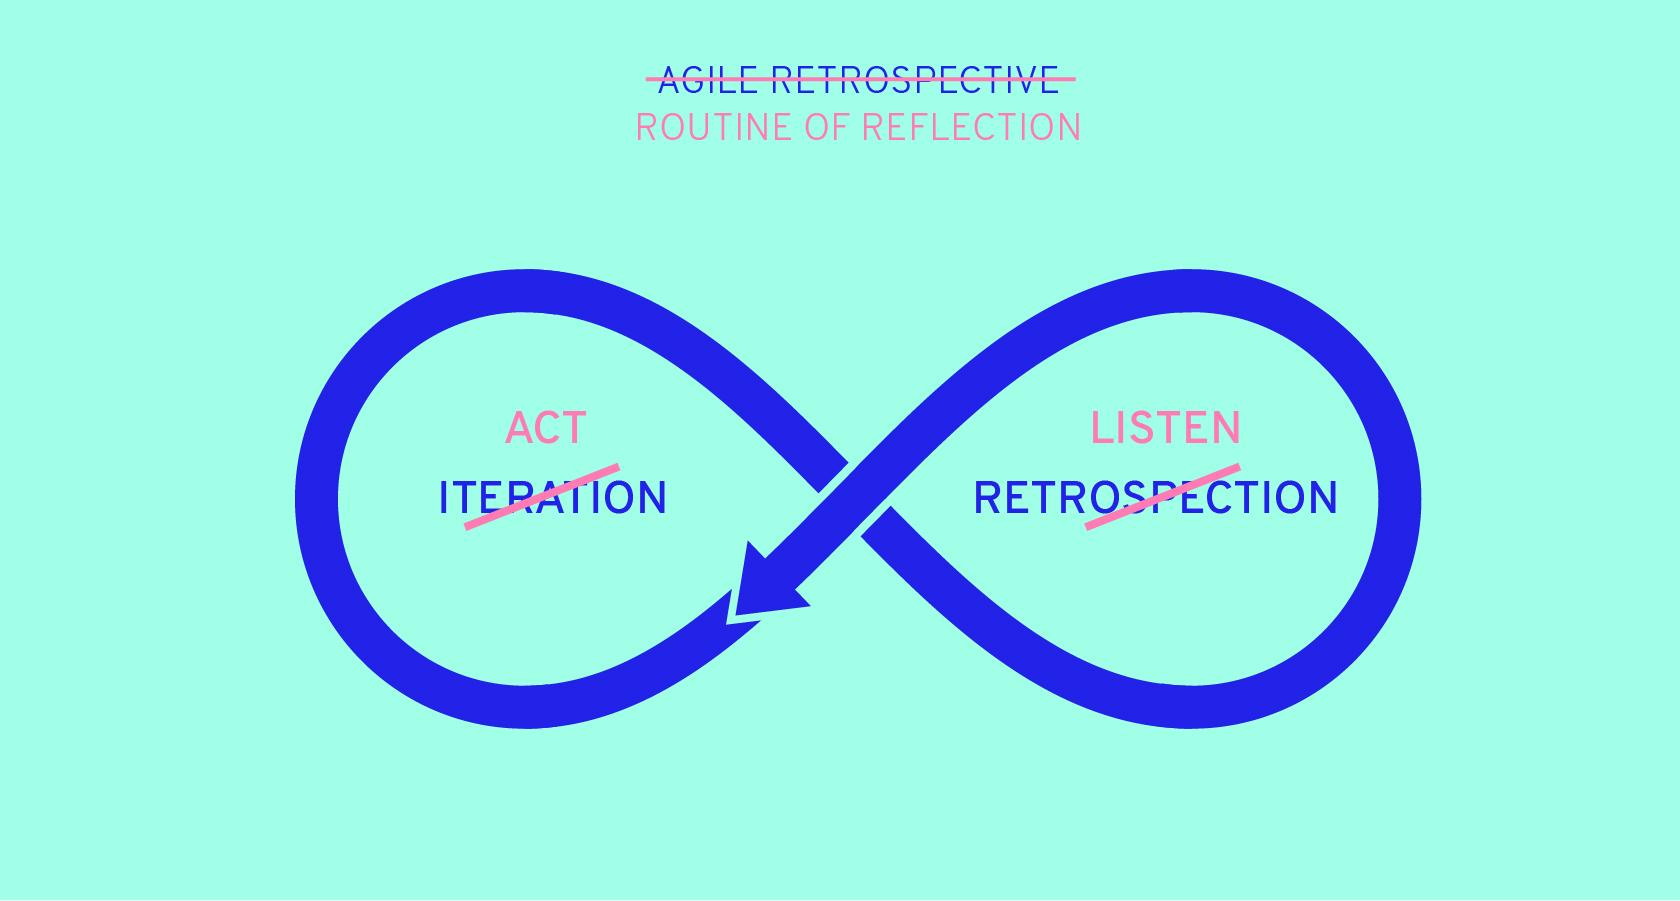 The Agile Retrospective can be used with empathetic listening.